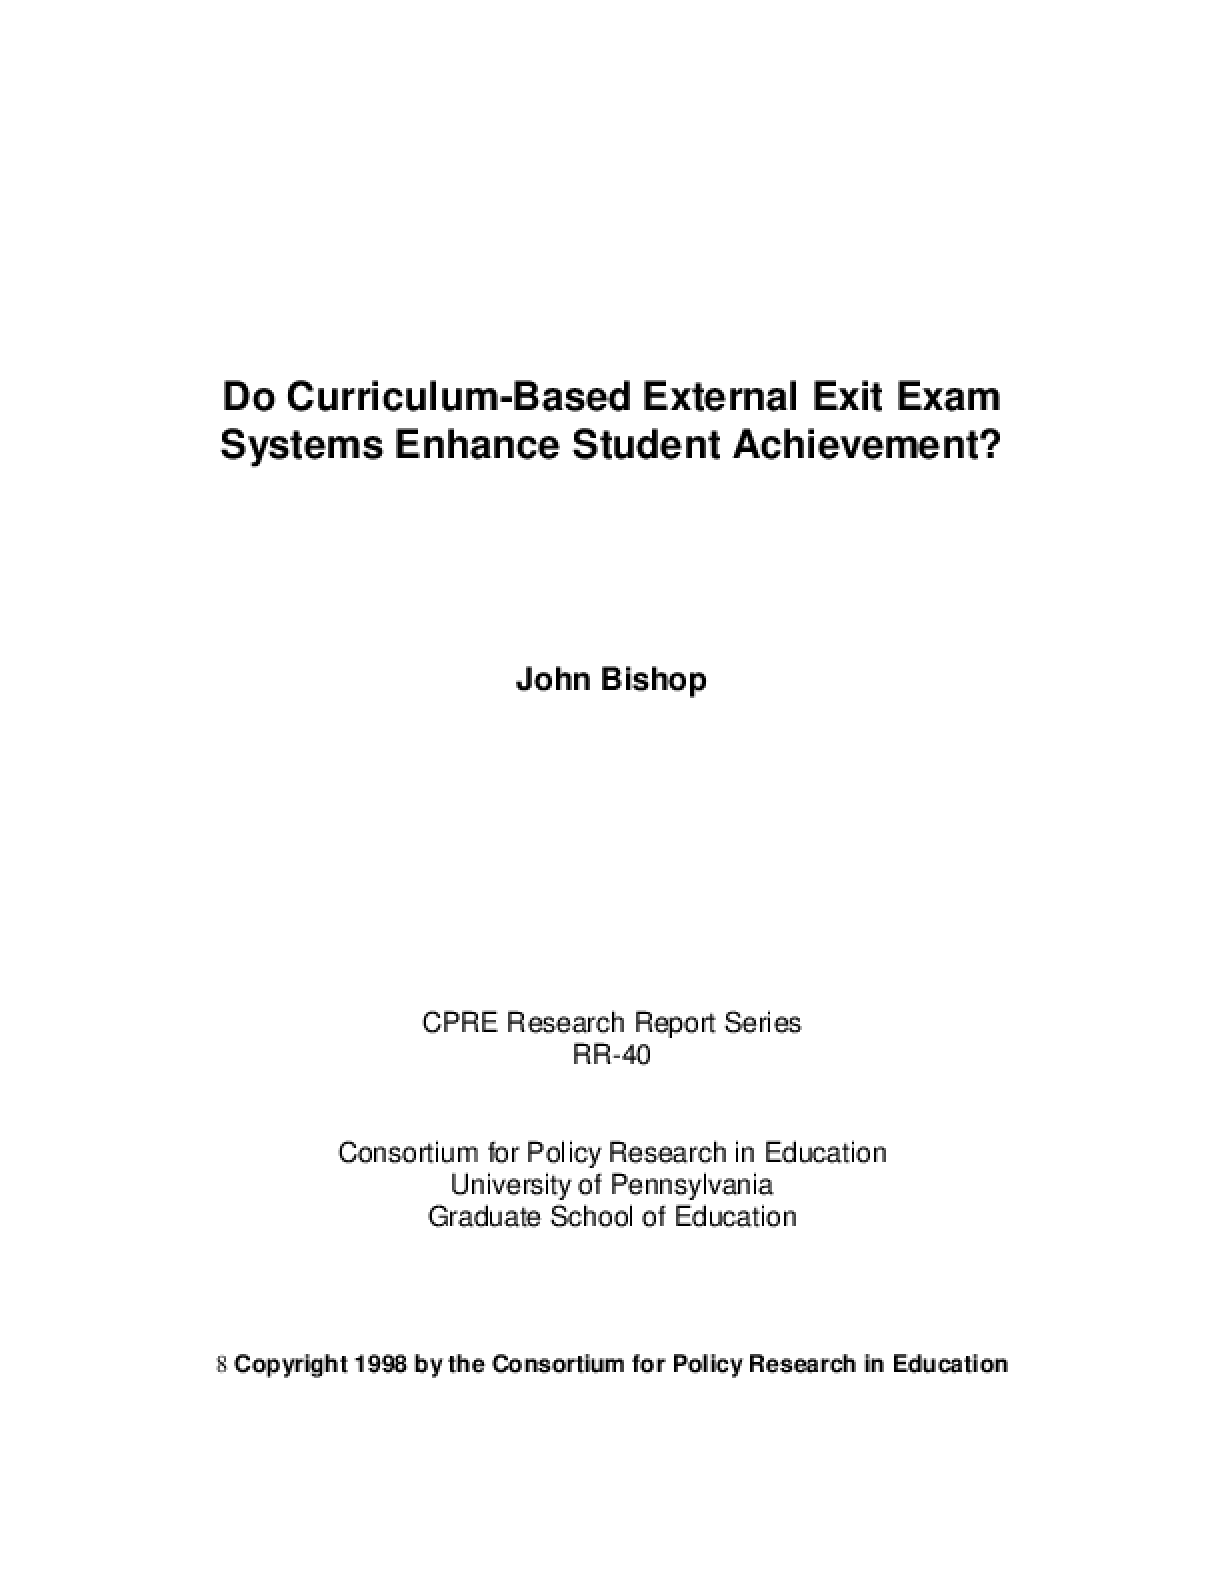 Do Curriculum-Based External Exit Exams Enhance Student Achievement?